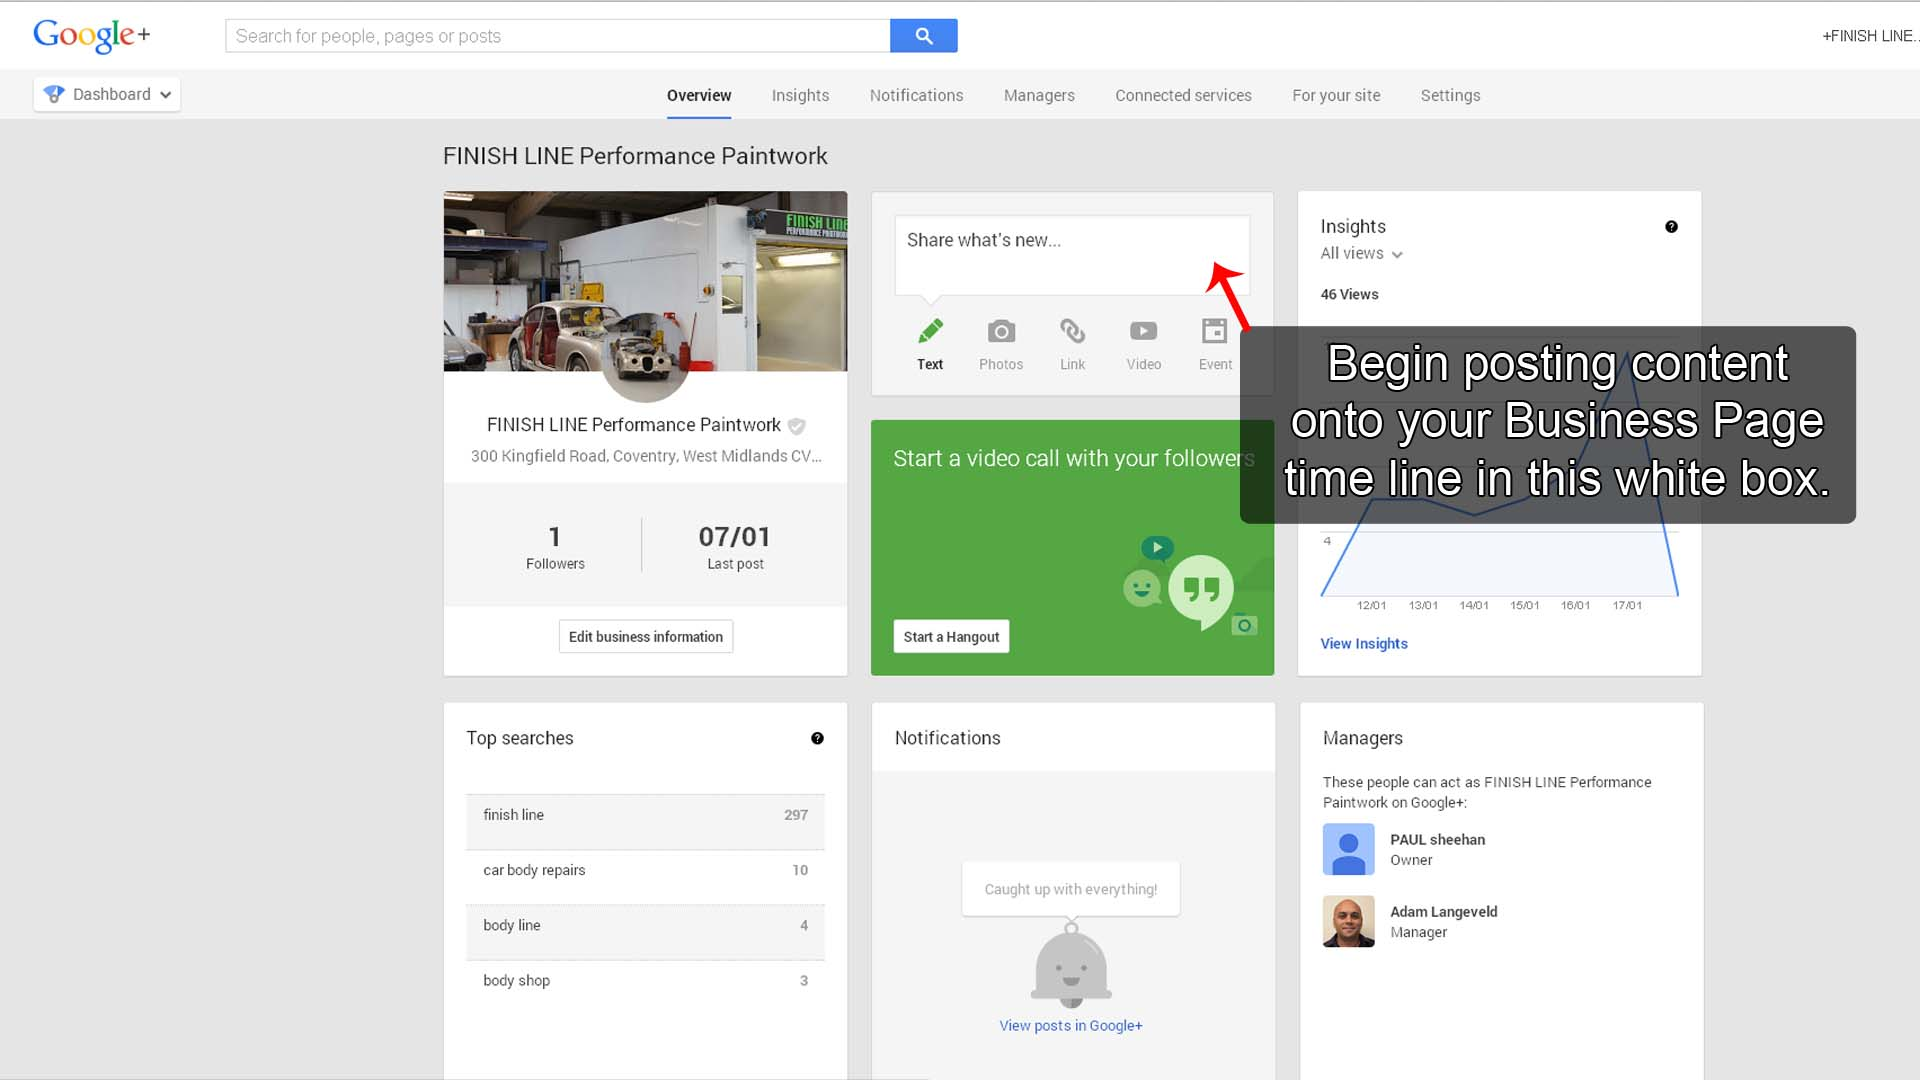 Google Manage Business Page Guide 8